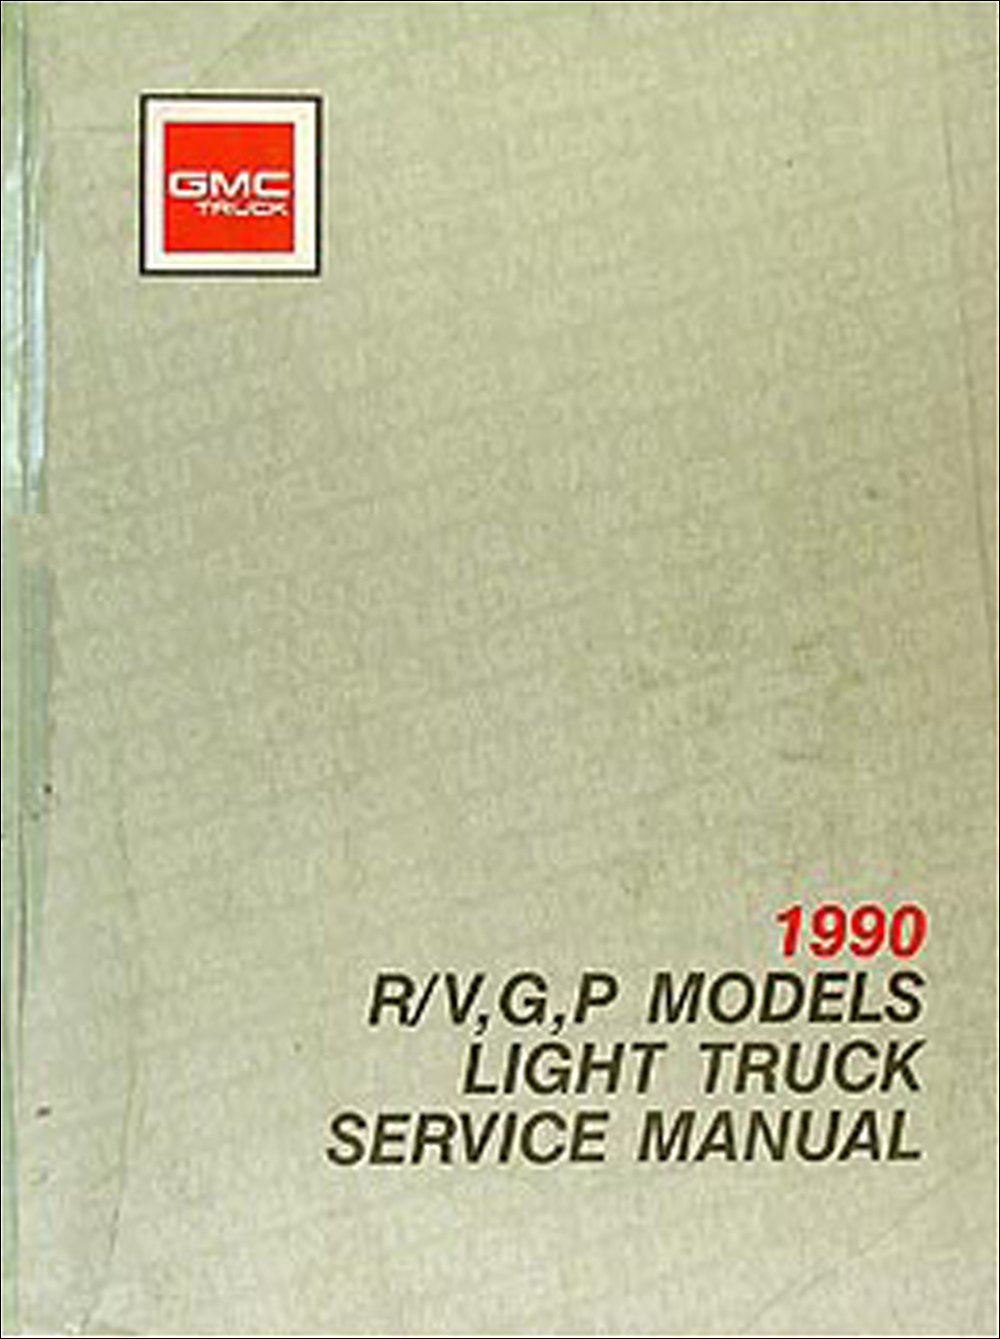 1990 GMC Truck Repair Shop Manual Original R/V Pickup Blazer Suburban Van FC